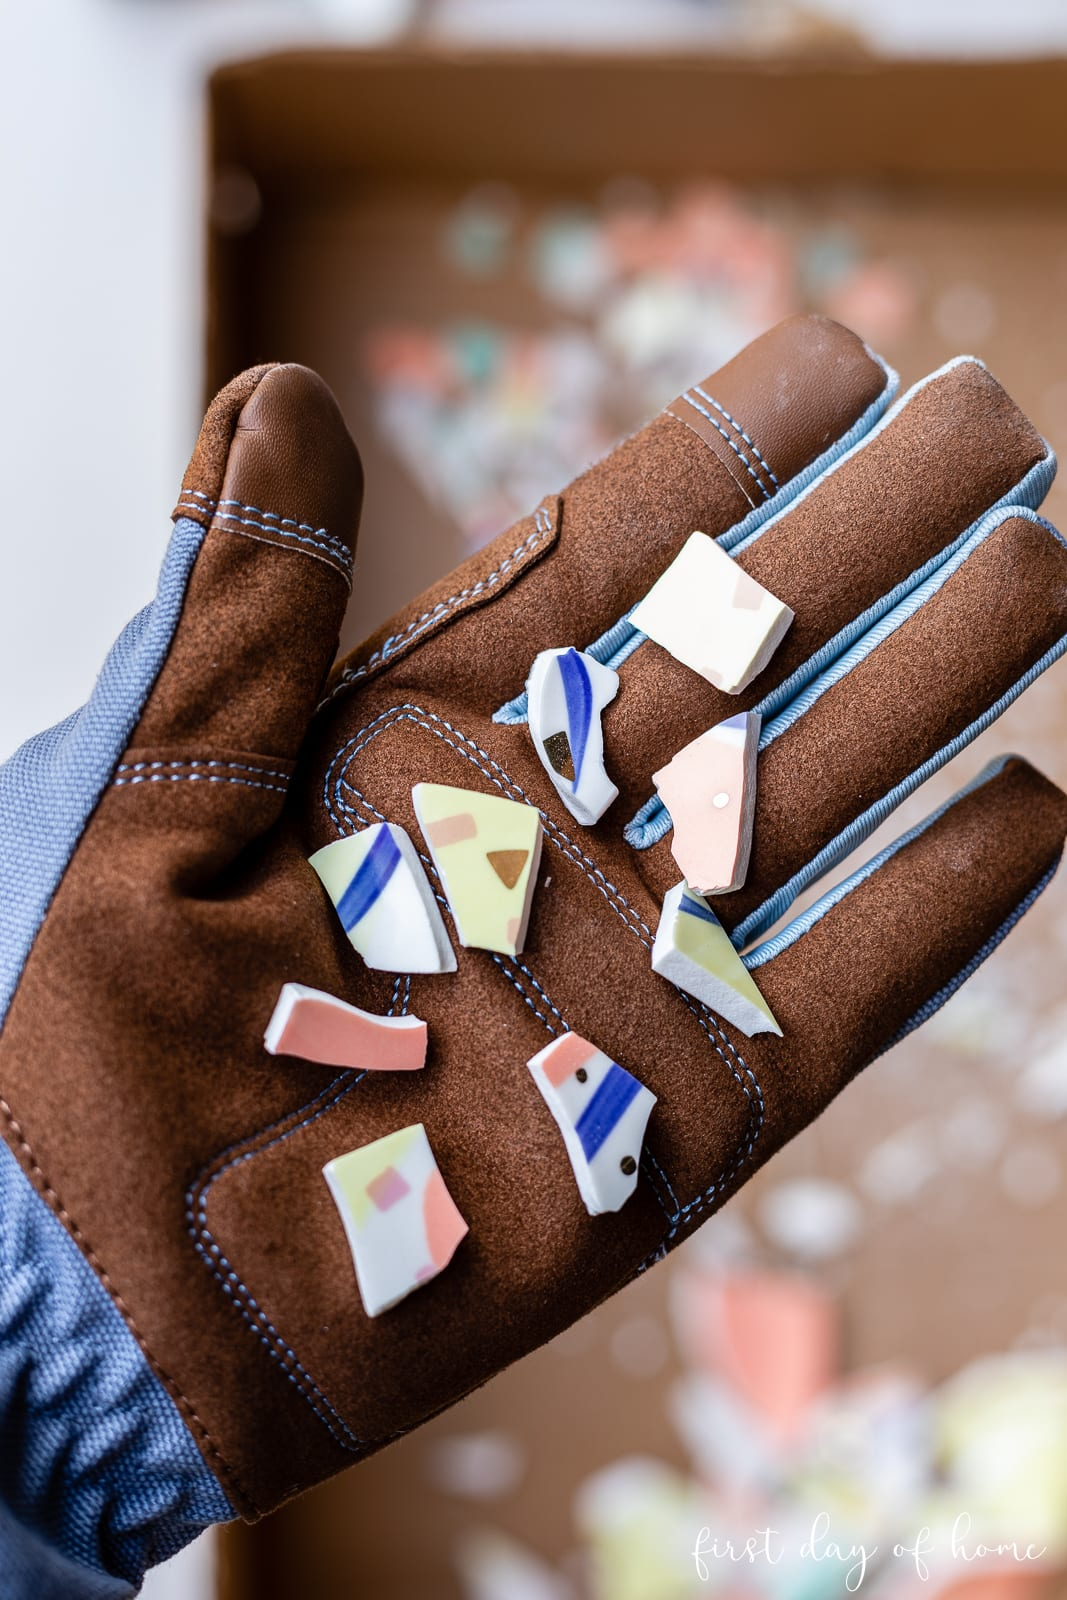 Mosaic tile pieces from broken plate in a gloved hand